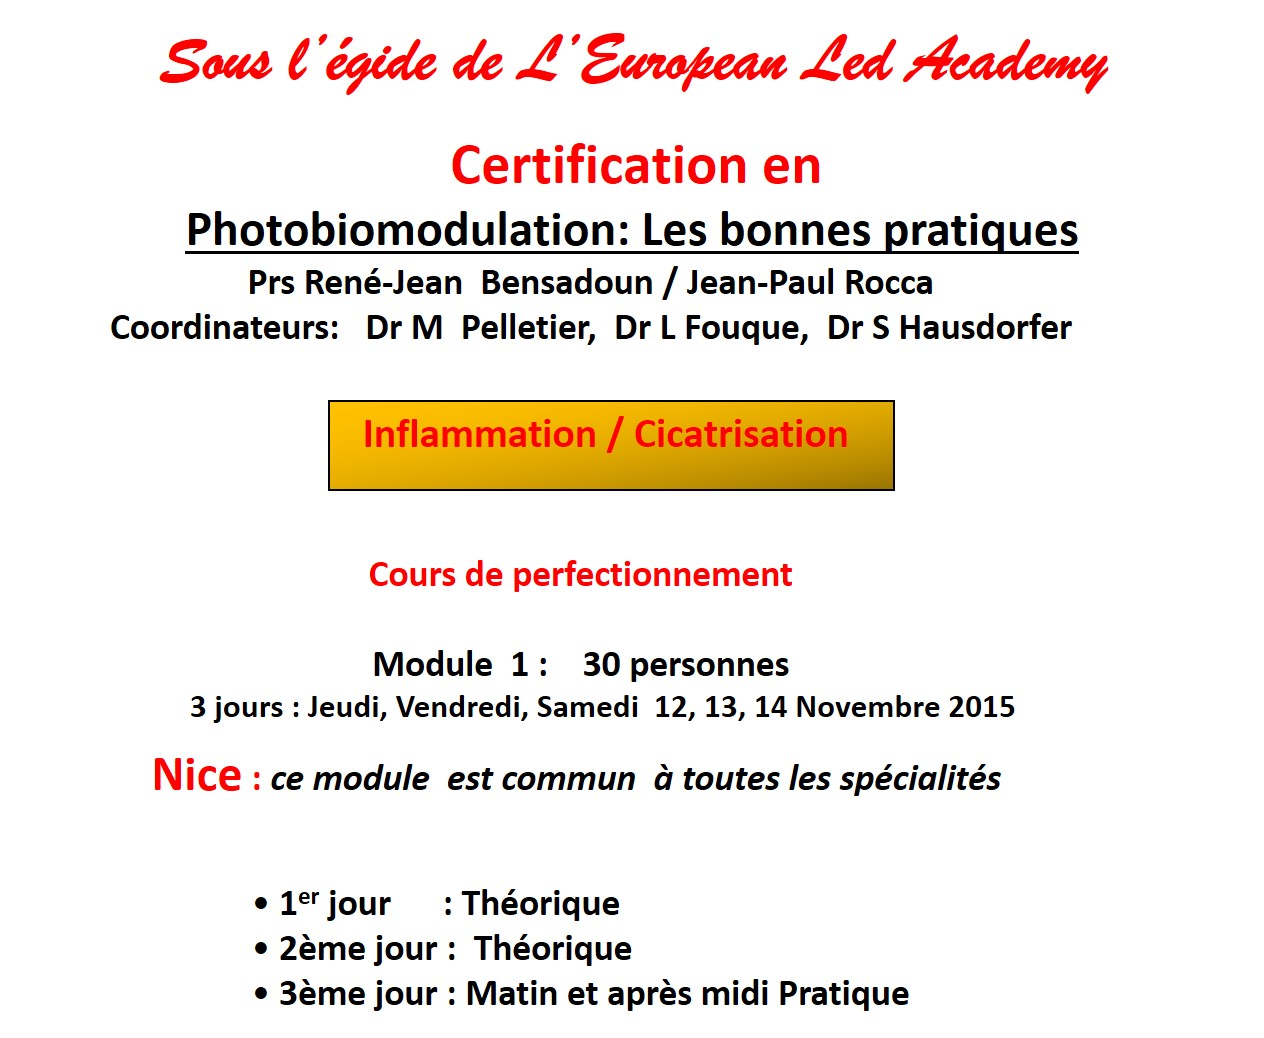 Certification Photobiomodulation  -  2015 November, Thursday 12th, Friday 13th, saturday 14th in Nice. Program and registration